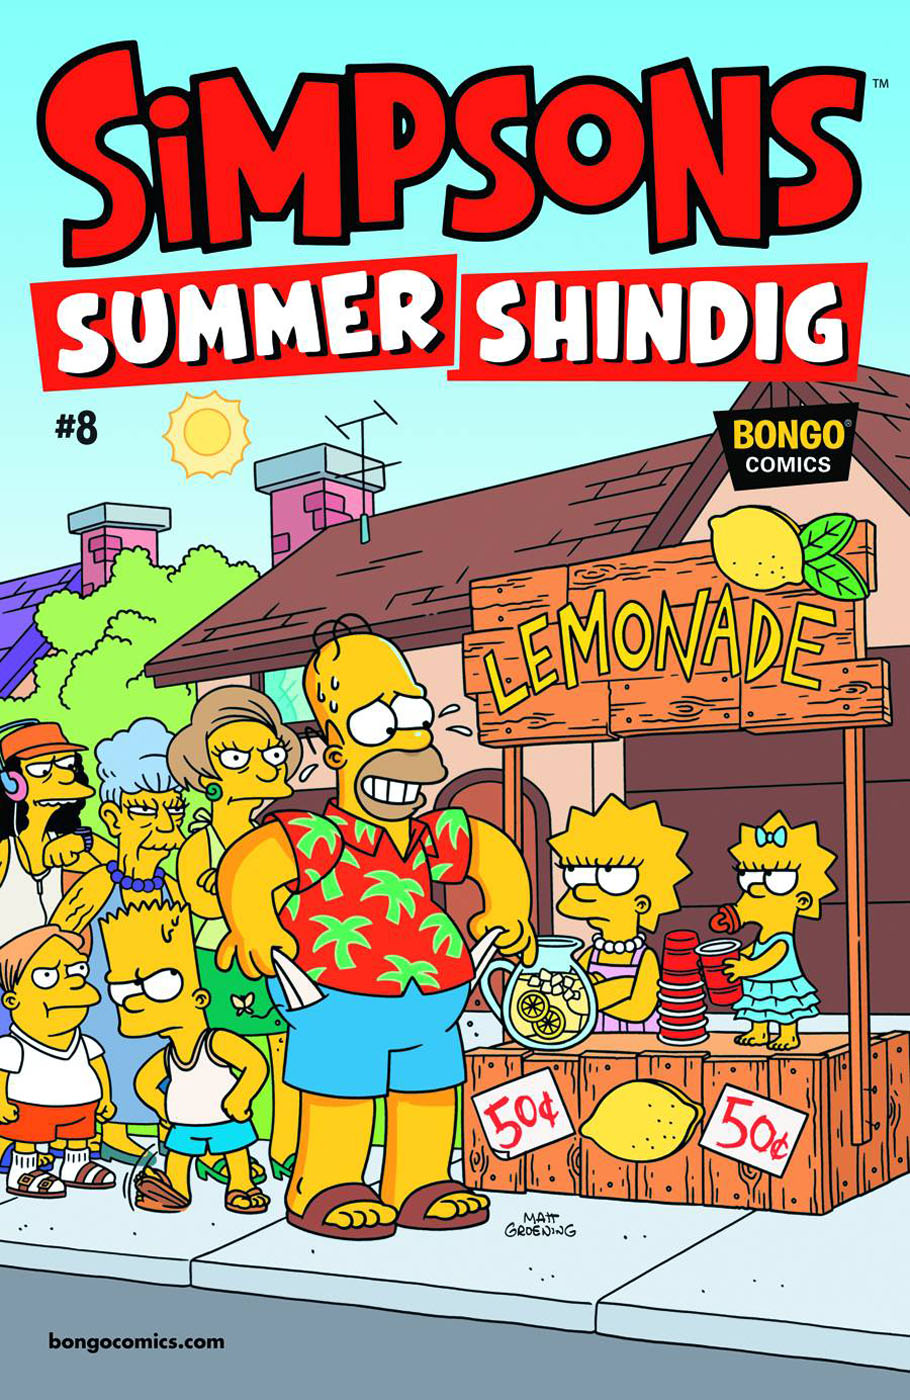 The Simpsons Summer Shindig 8.jpg